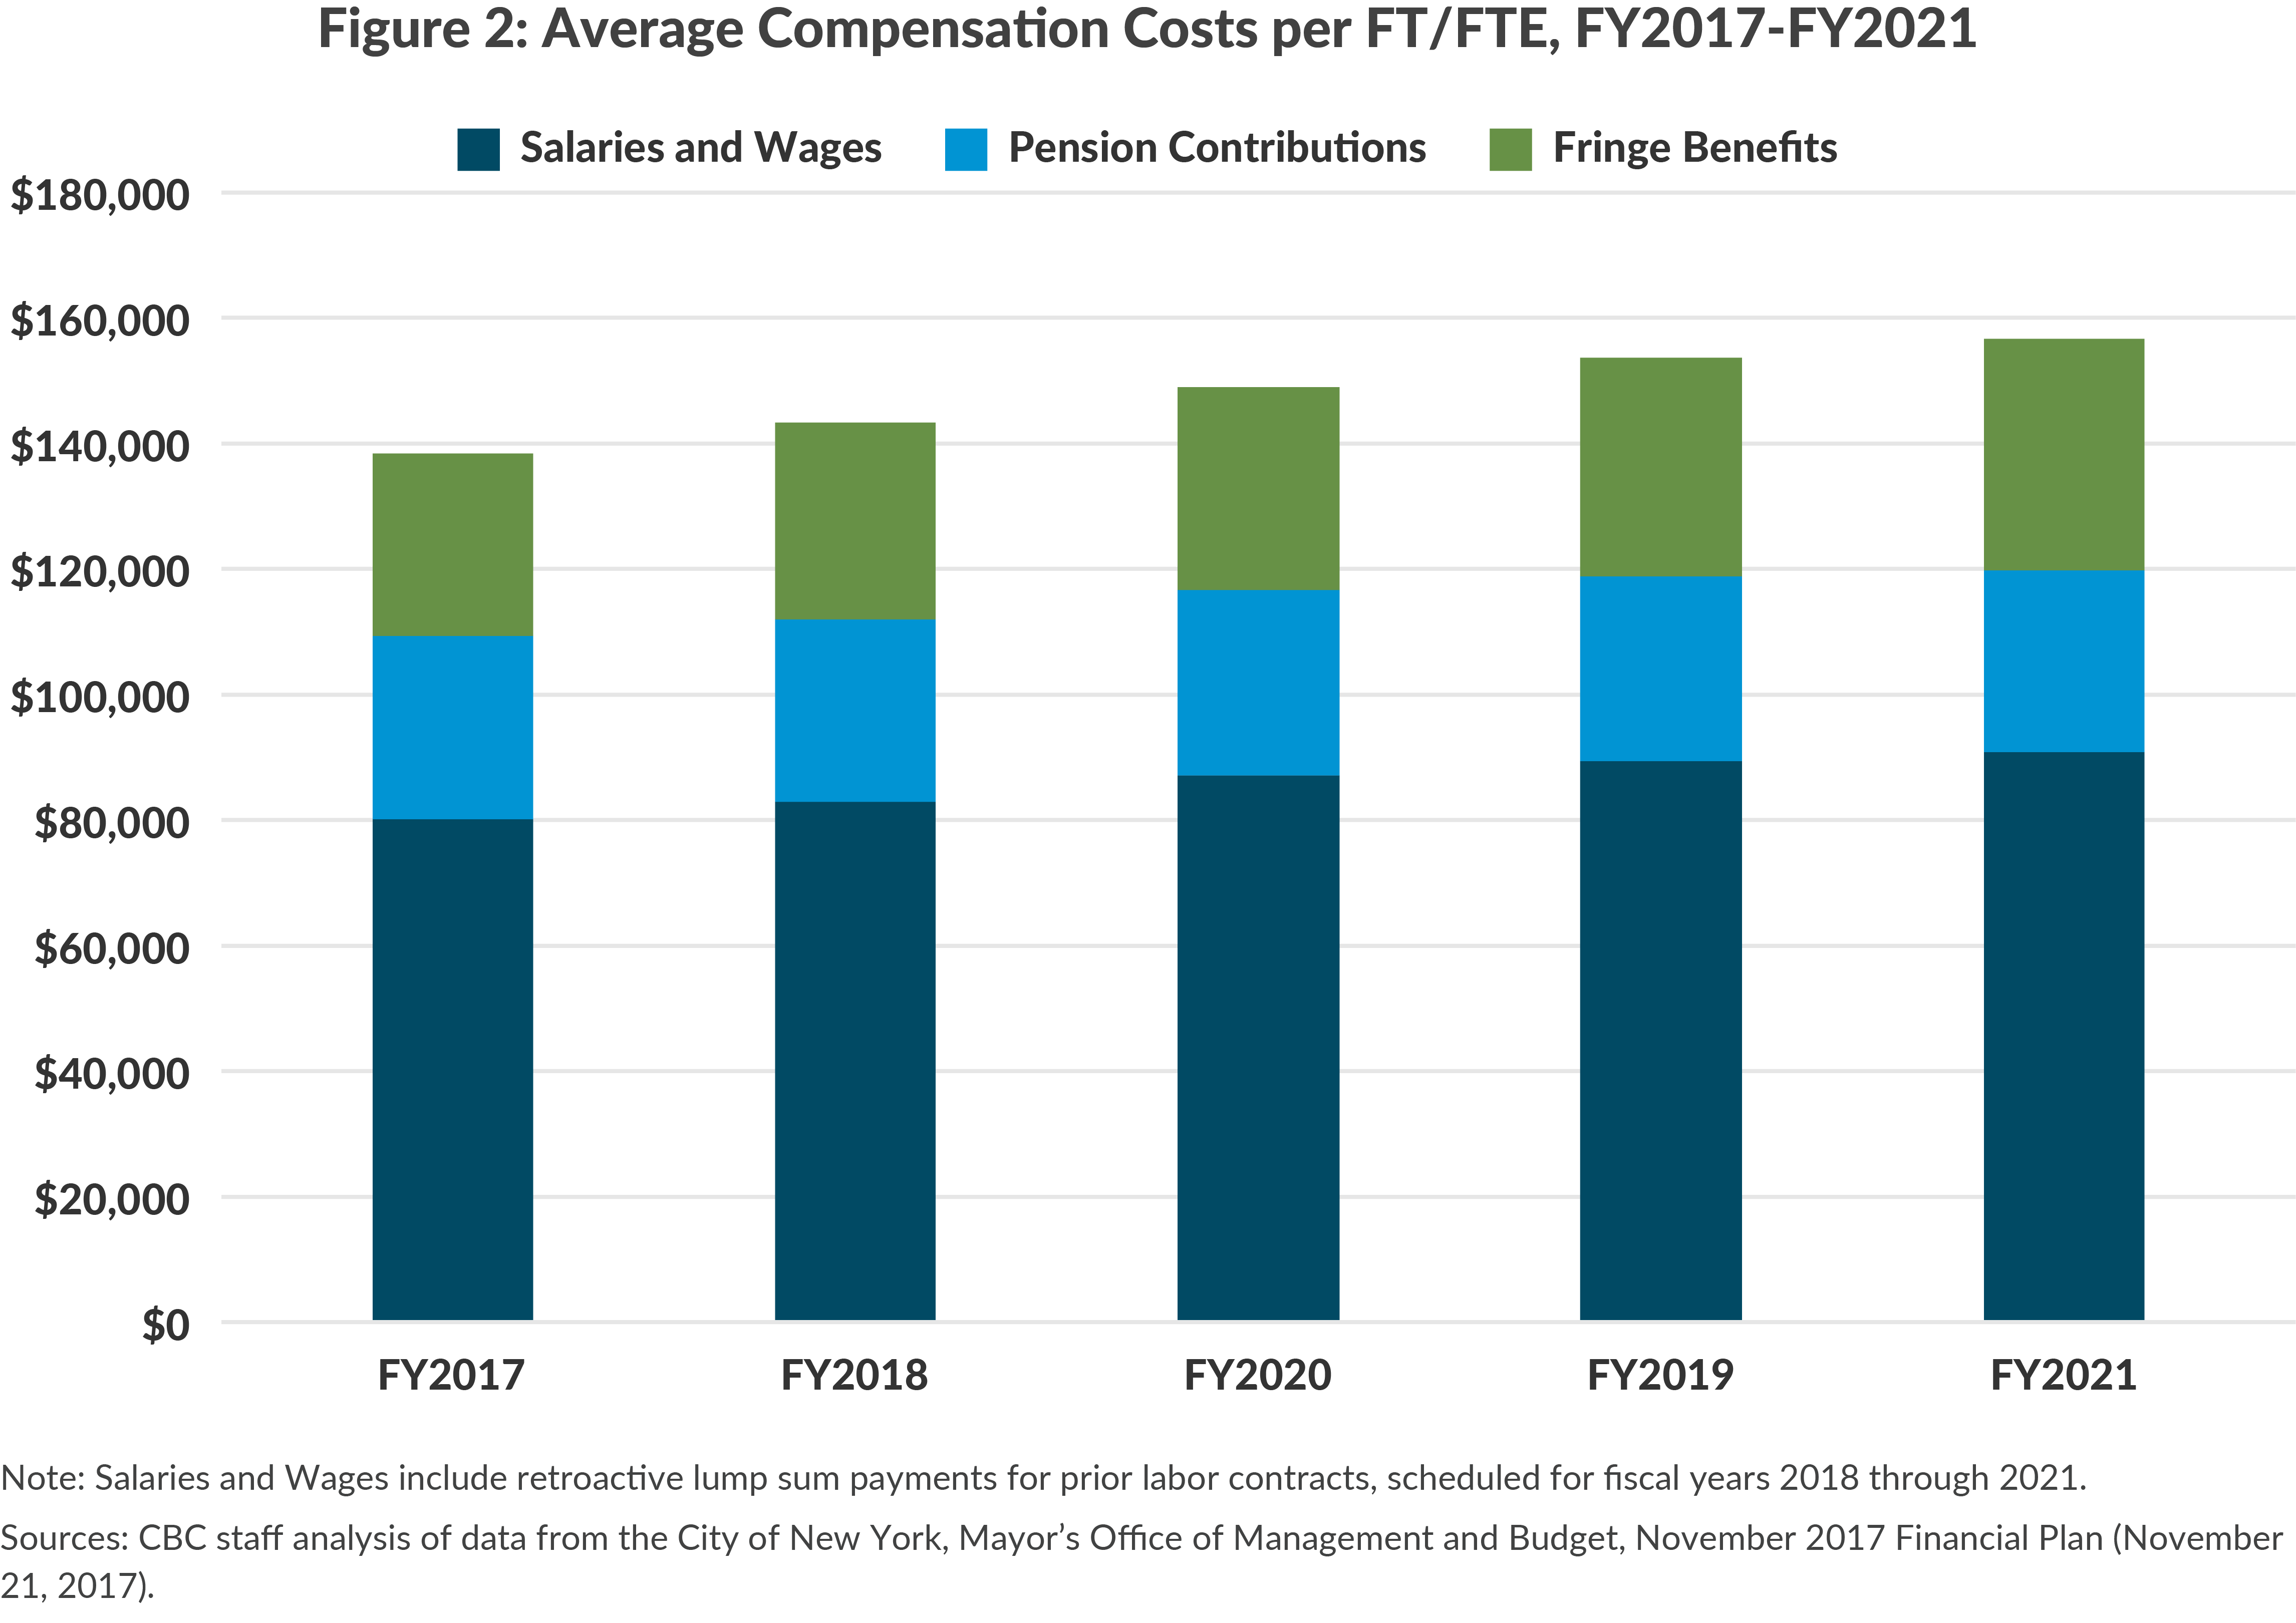 Figure 2: Average Compensation Costs per FT/FTE, FY2017-FY2021